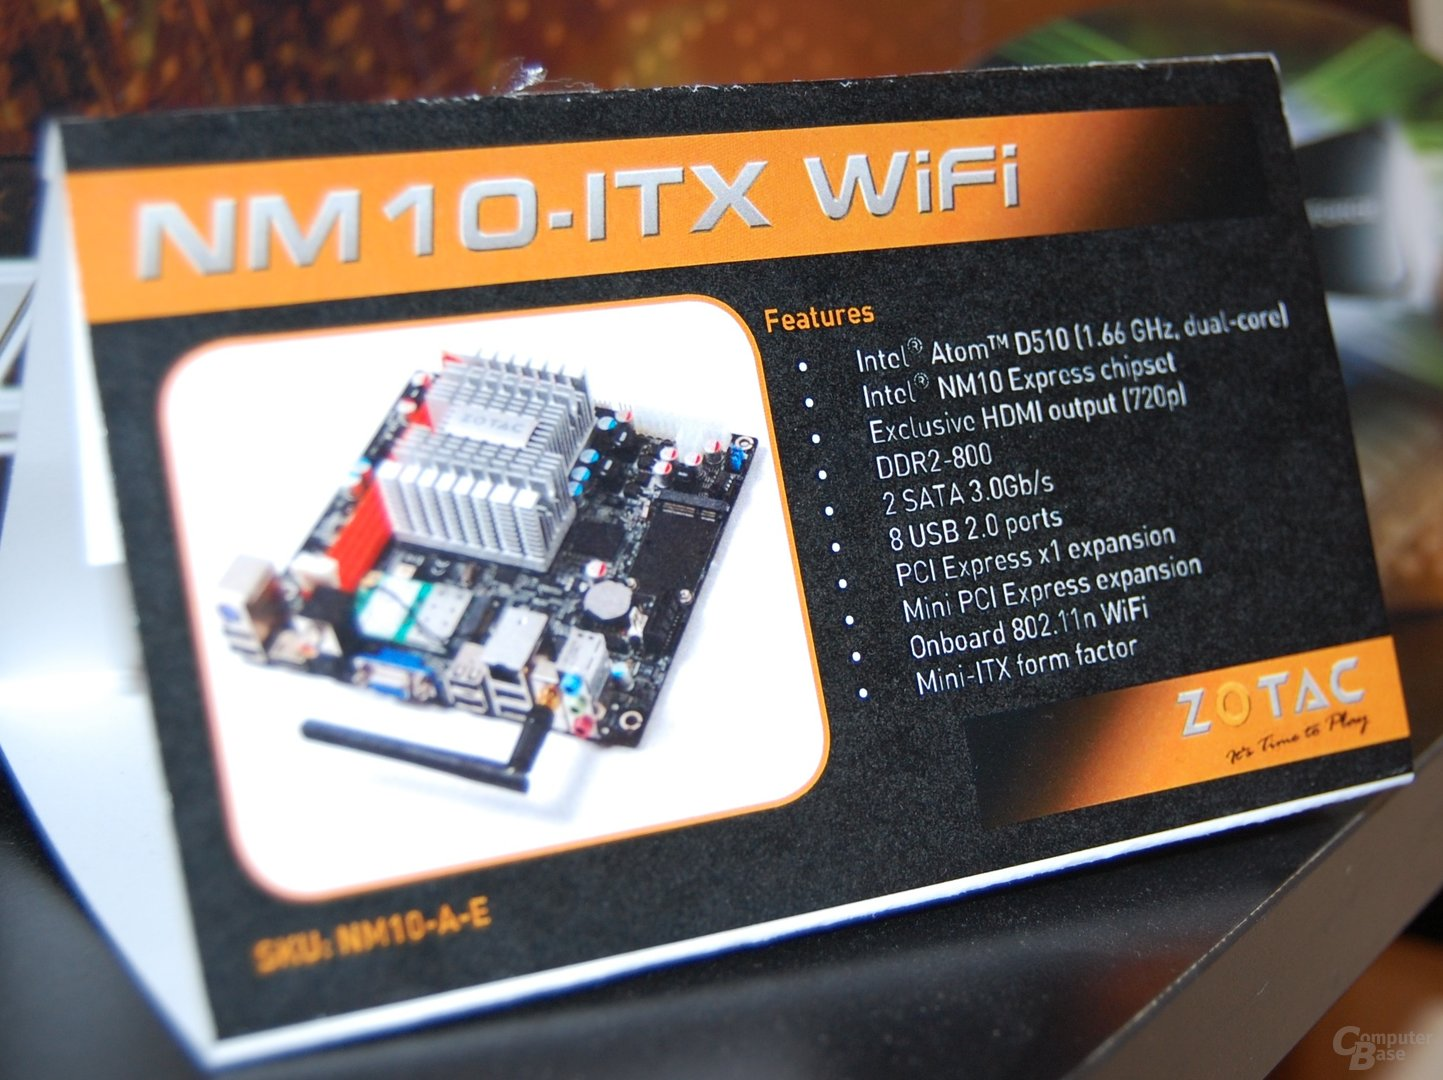 Zotac NM10-ITX WiFi